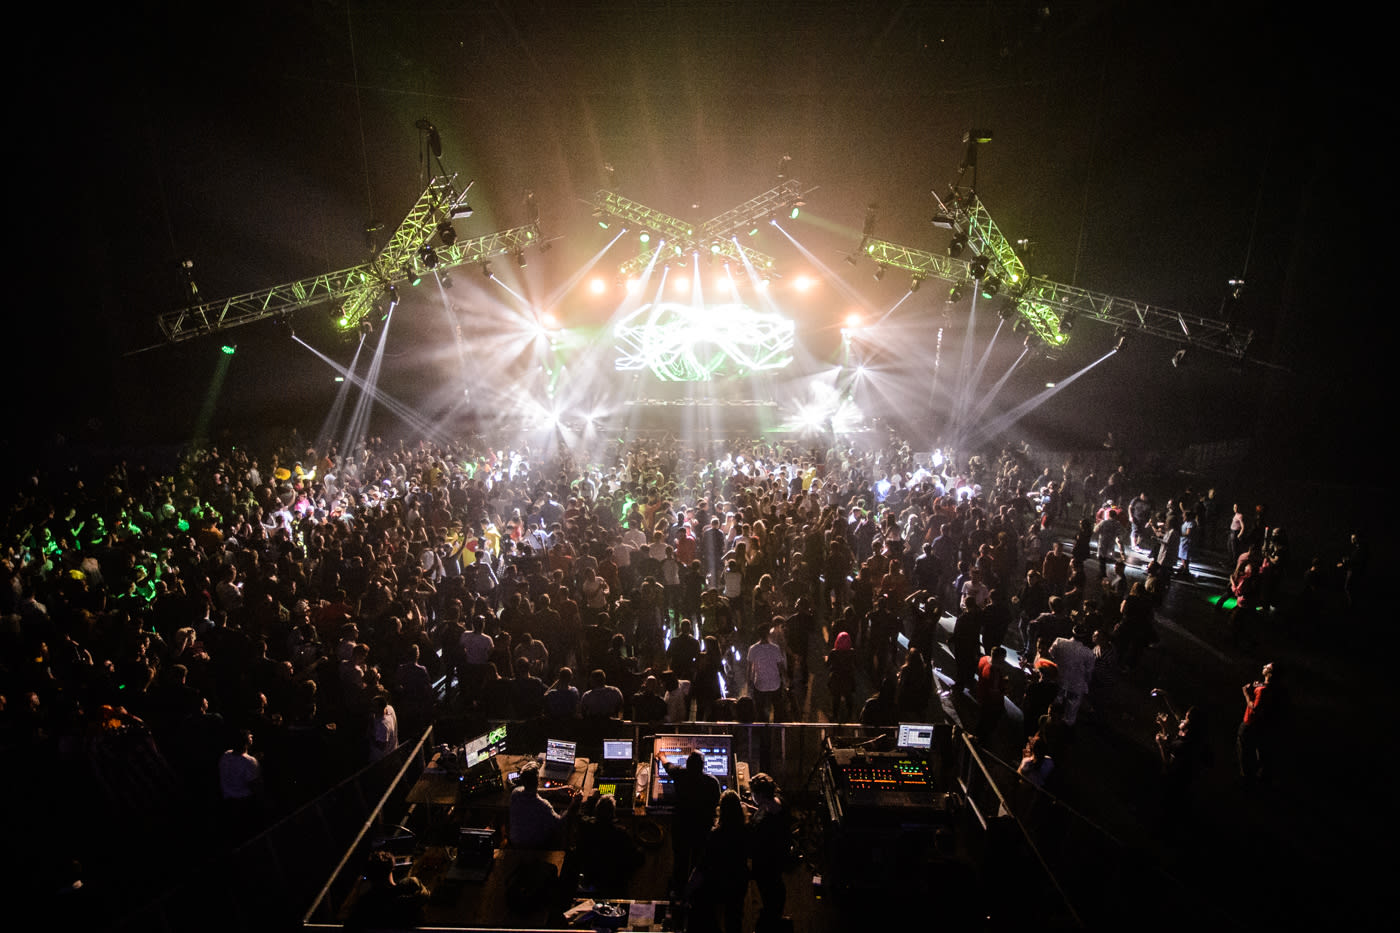 winterparty-at-3arena-dublin-30-10-2016-by-sean-smyth-22-of-53